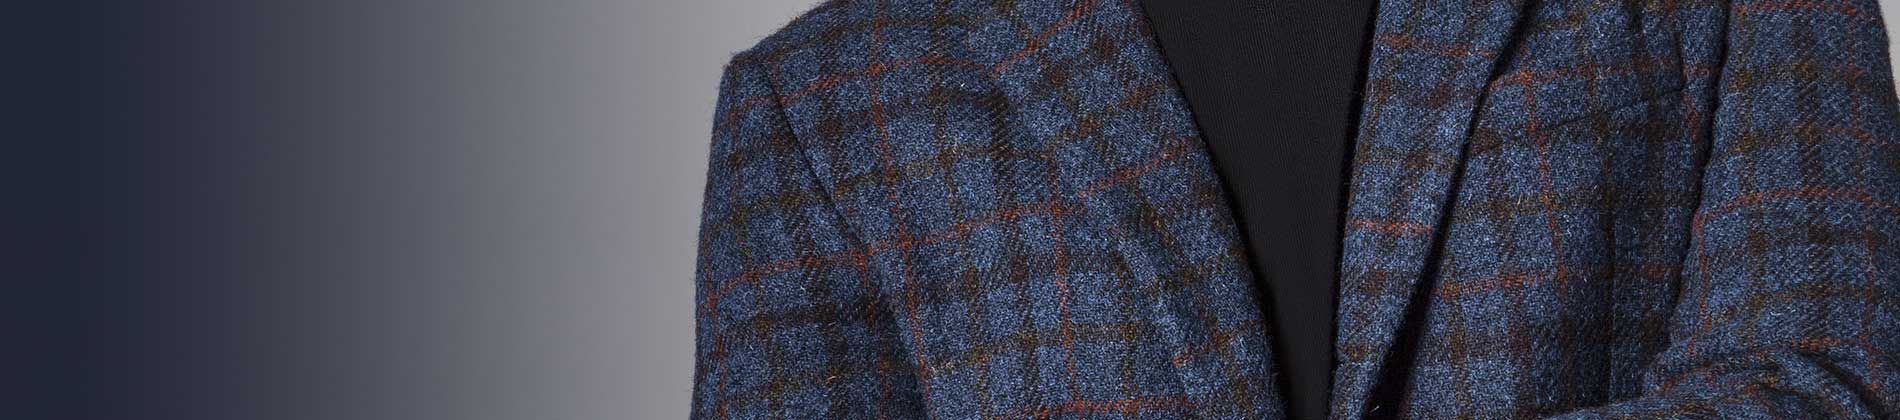 Harris Tweed fabric from Gladson New York